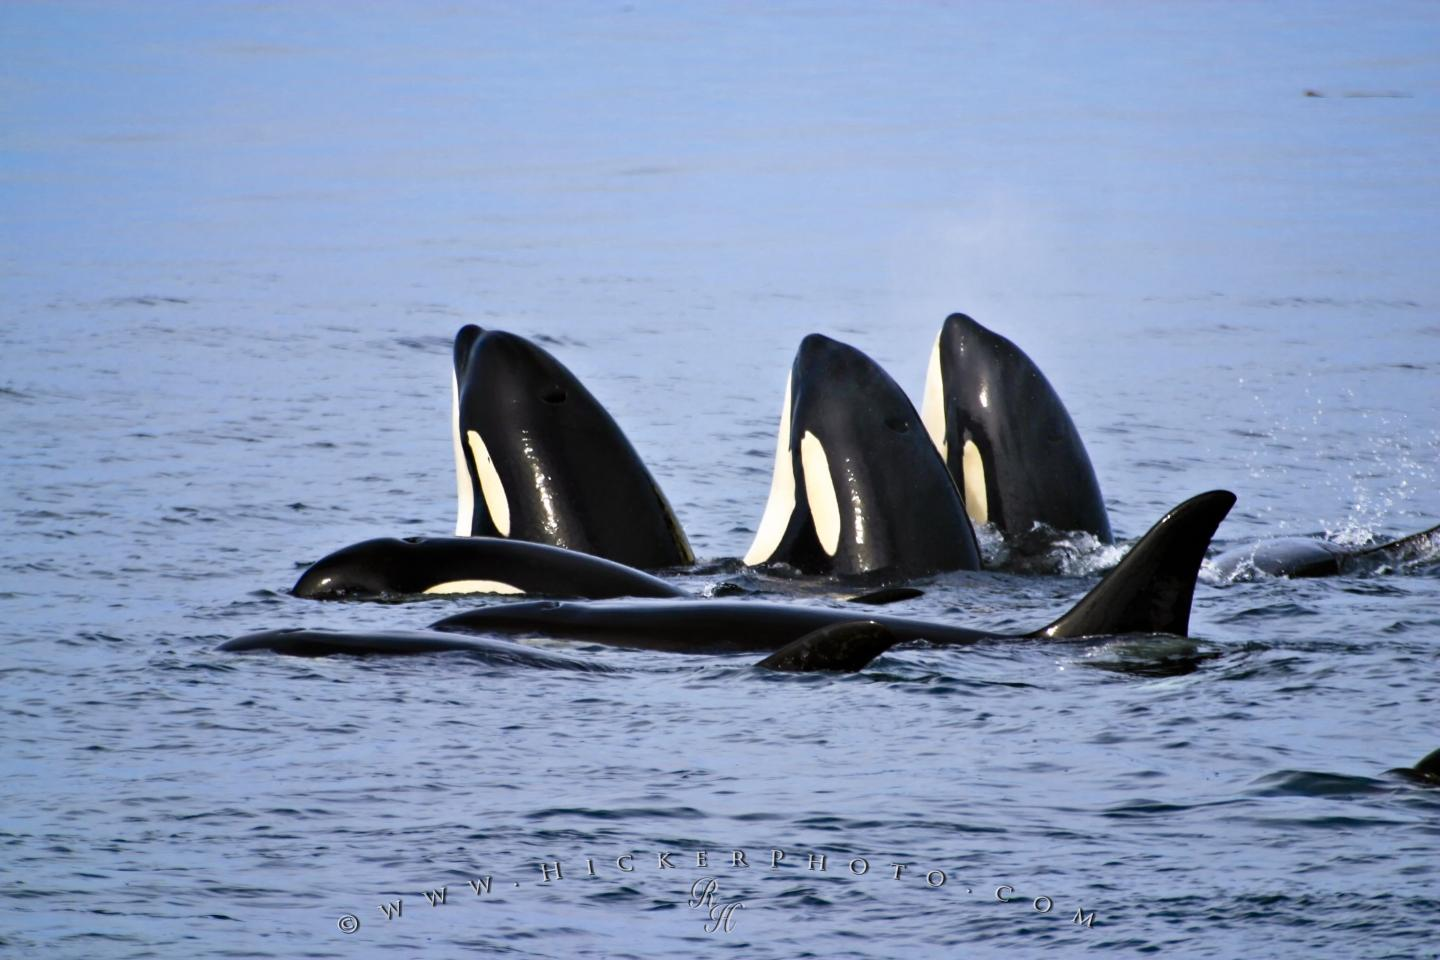 Free wallpaper background family group orcas killer whales spy hopping free wallpaper size 1440px altavistaventures Images